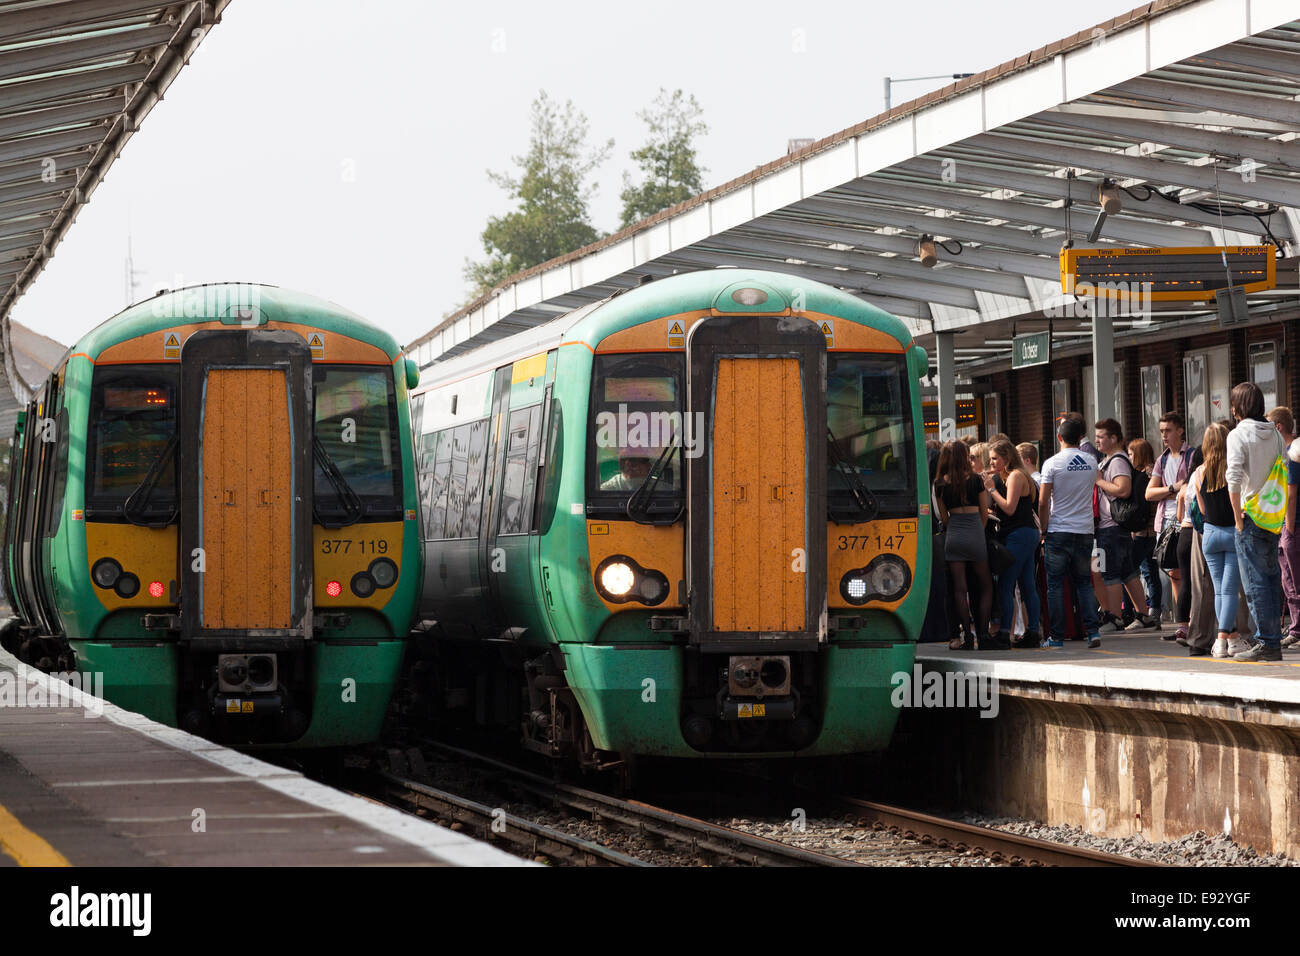 Trains arriving at Chichester station in both directions, West Sussex - Stock Image